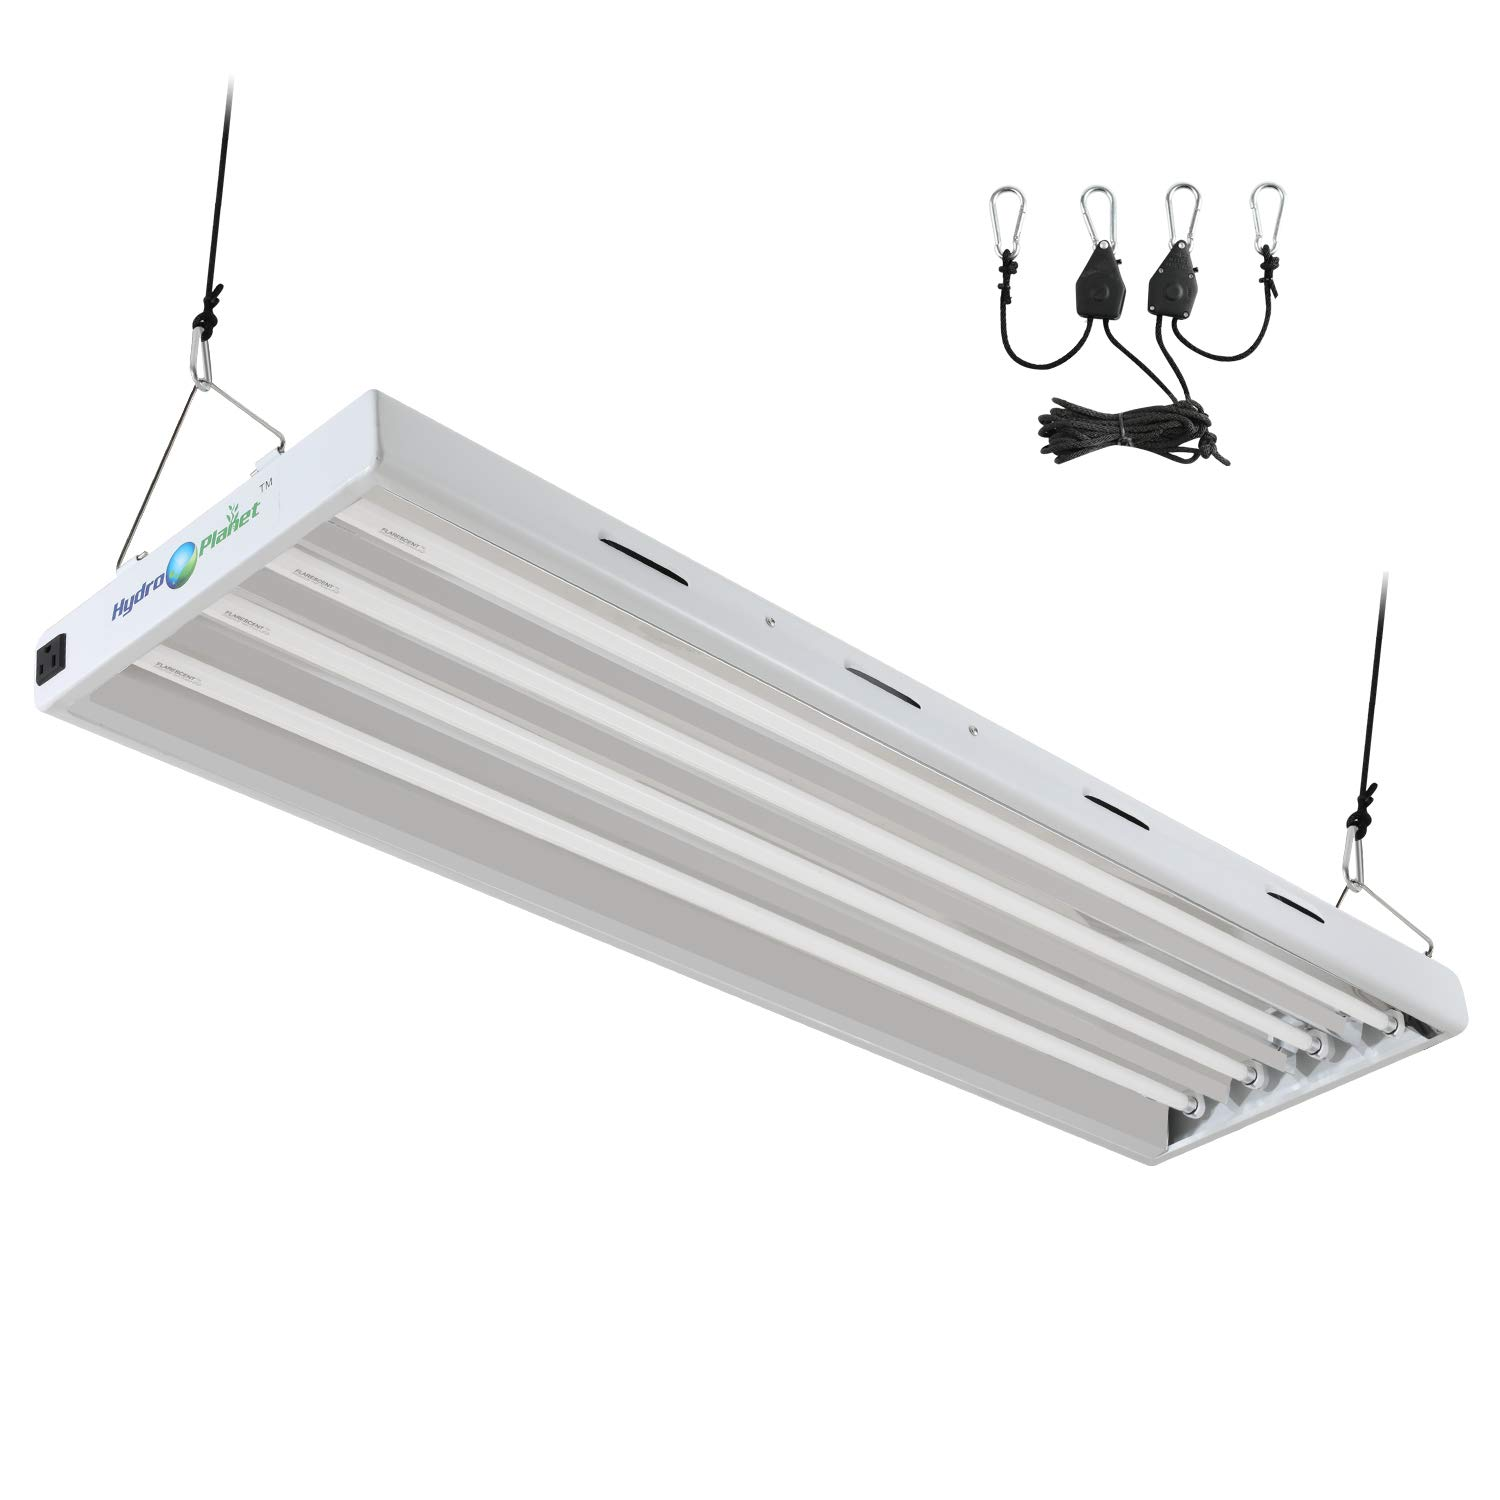 Hydroplanet T5 4ft 4lamp Fluorescent HO Bulbs Included for Indoor Horticulture Gardening T5 Grow Lights Fixtures (4 Lamp, 4ft) by Hydroplanet